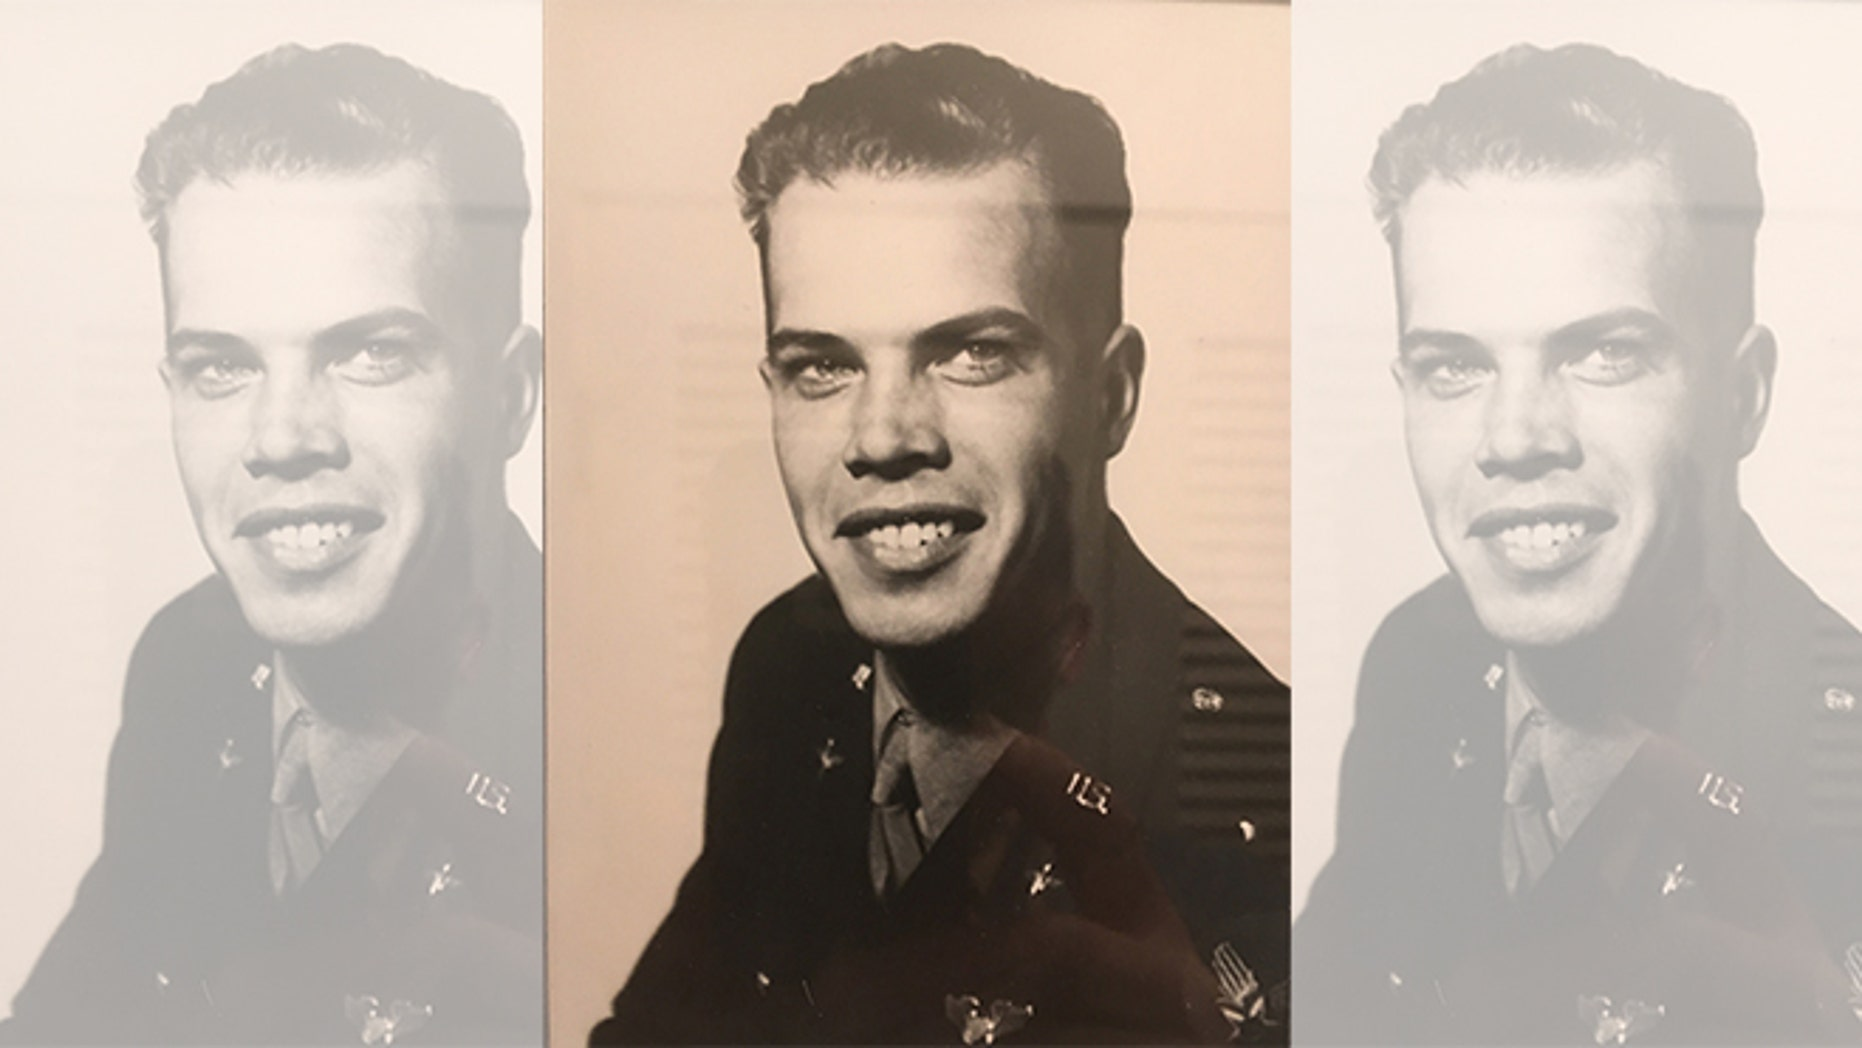 Army Air Forces 1st Lt. William J. Gray, Jr., 21, of Kirkland, Washington.